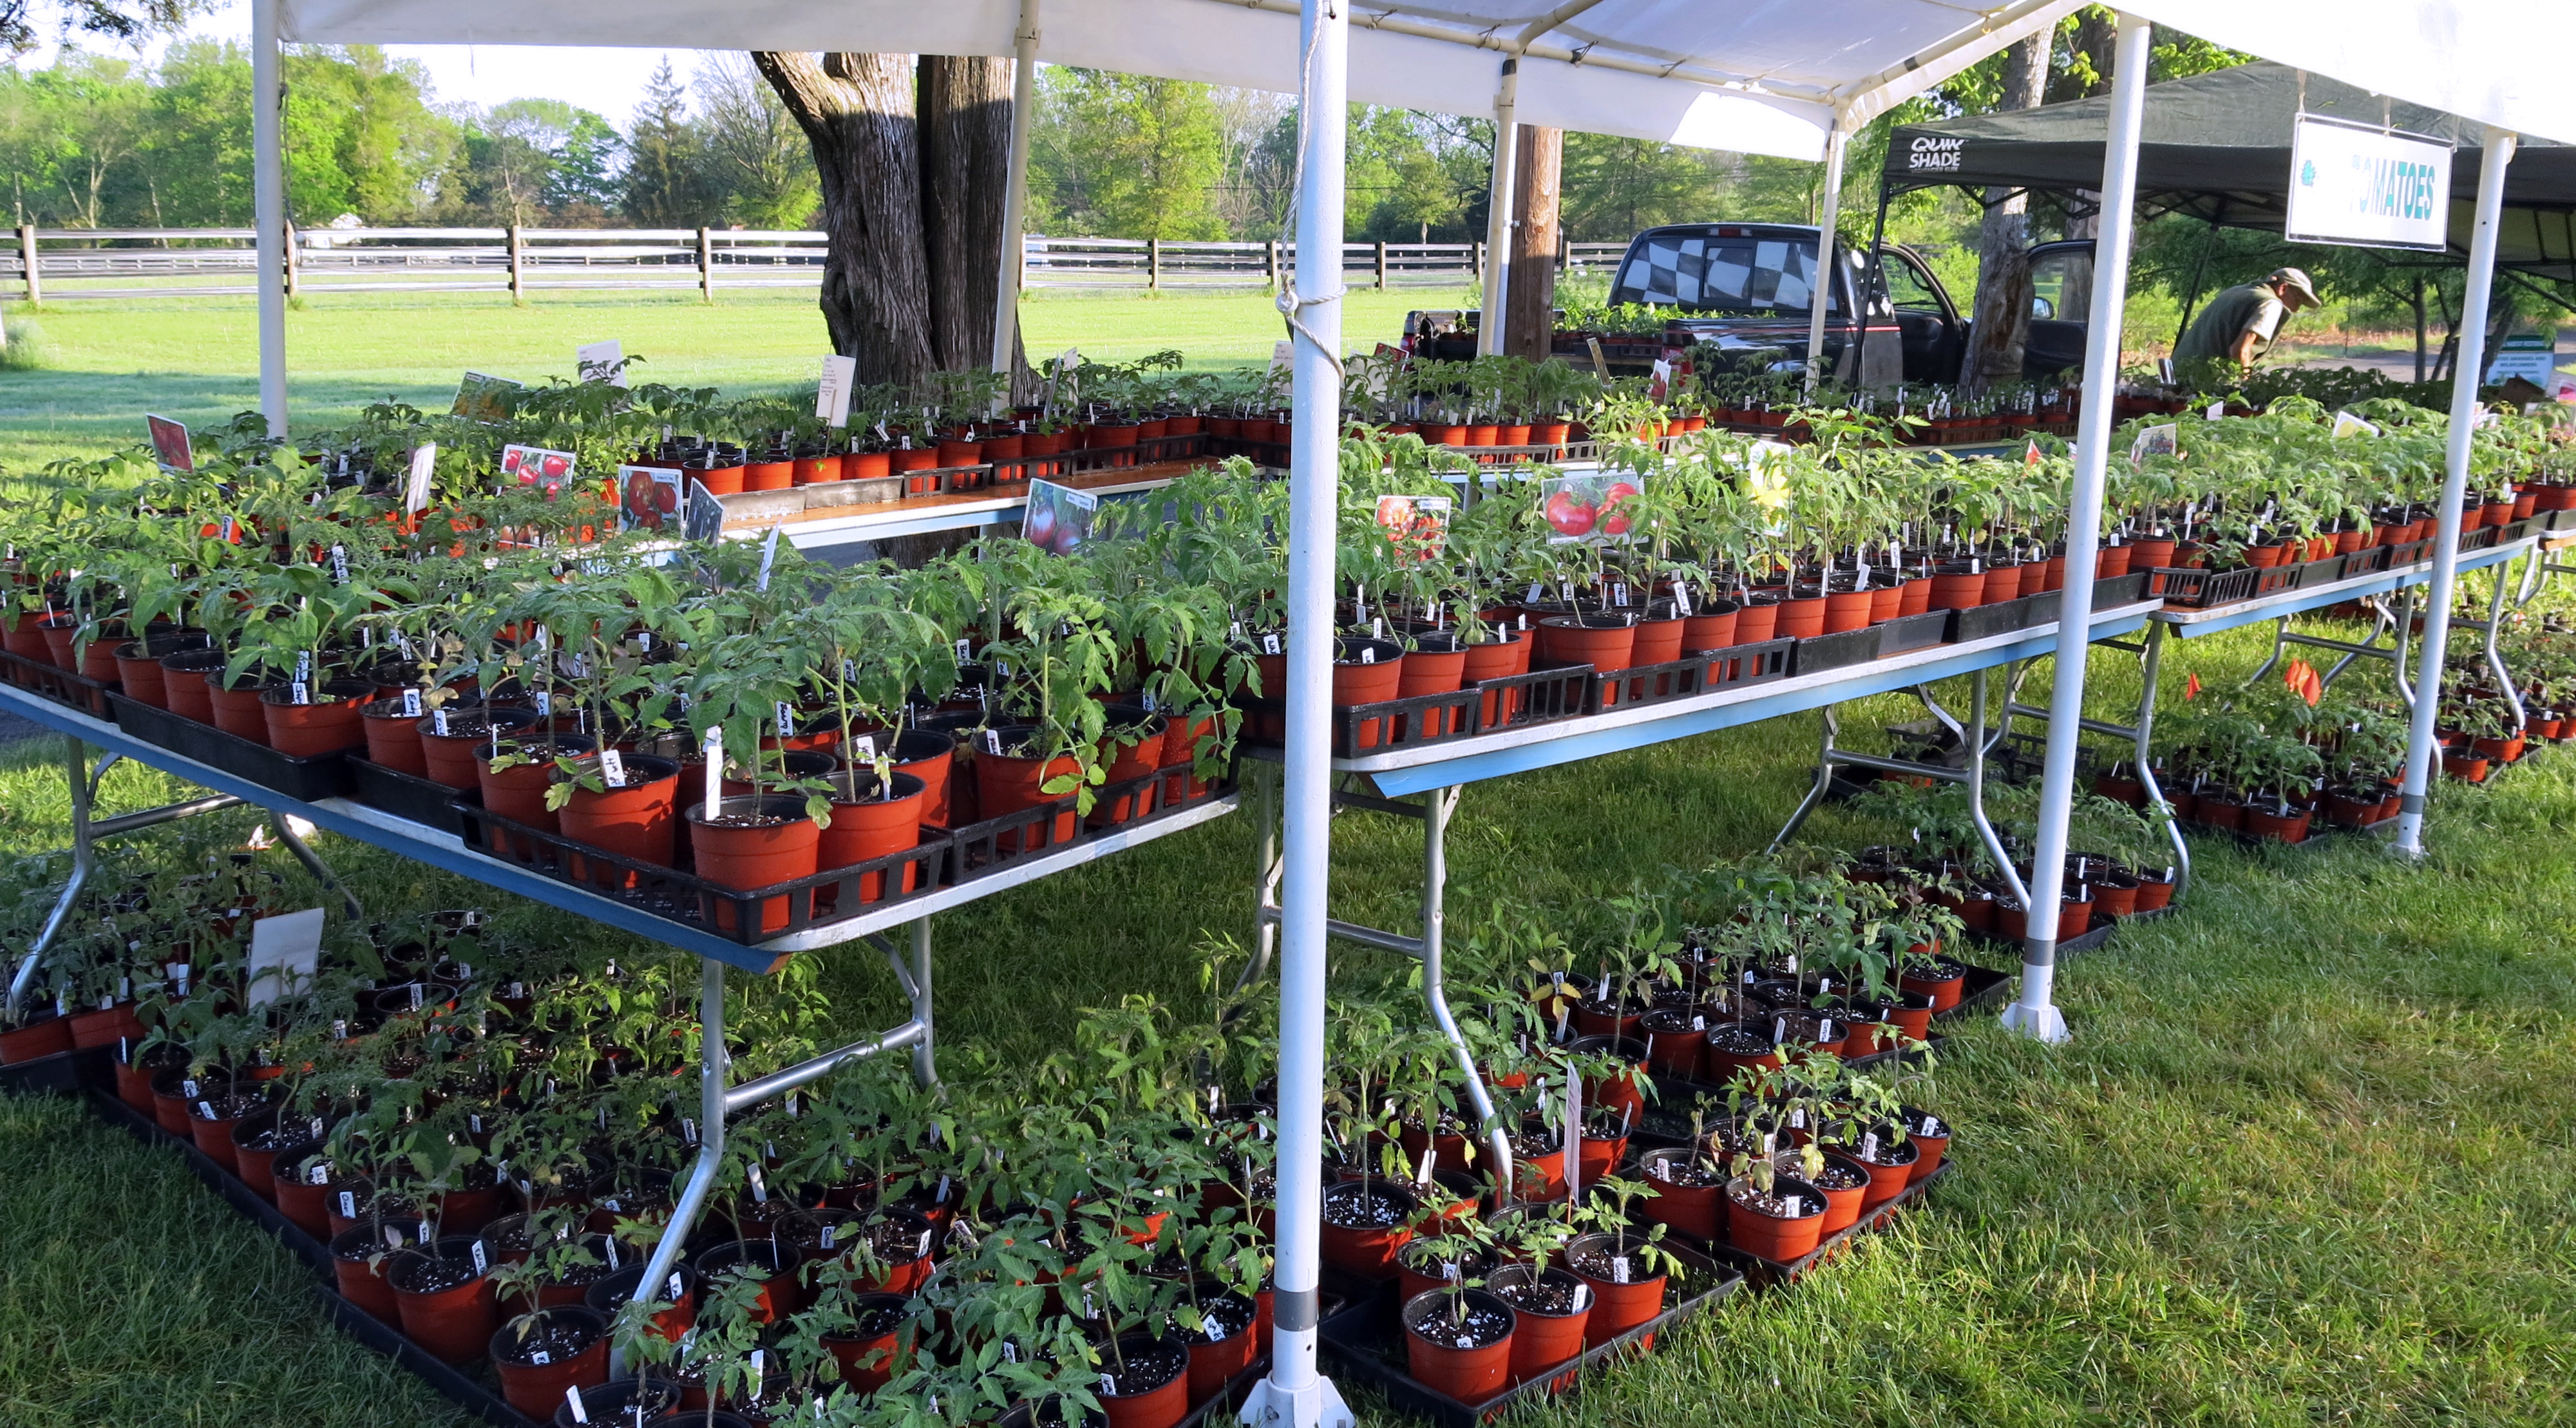 Homegrown Tomatoes And Peppers Will Be In Abundance, Including The Popular  Rutgers Tomato Varieties, Rutgers, Ramapo, Moreton, Rutgers 250,